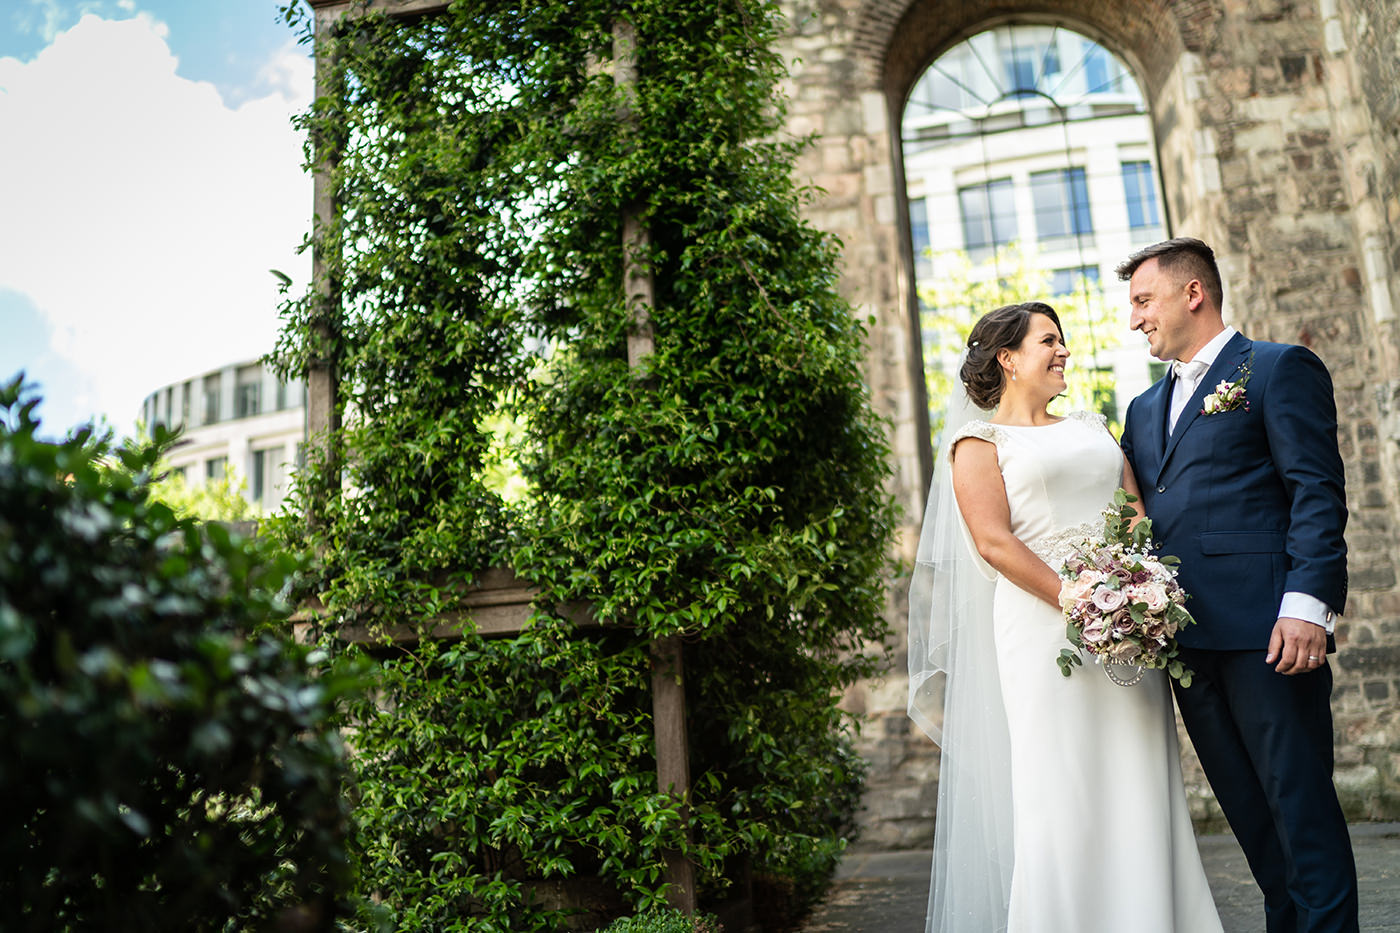 Greyfriars Church Garden Wedding Photos